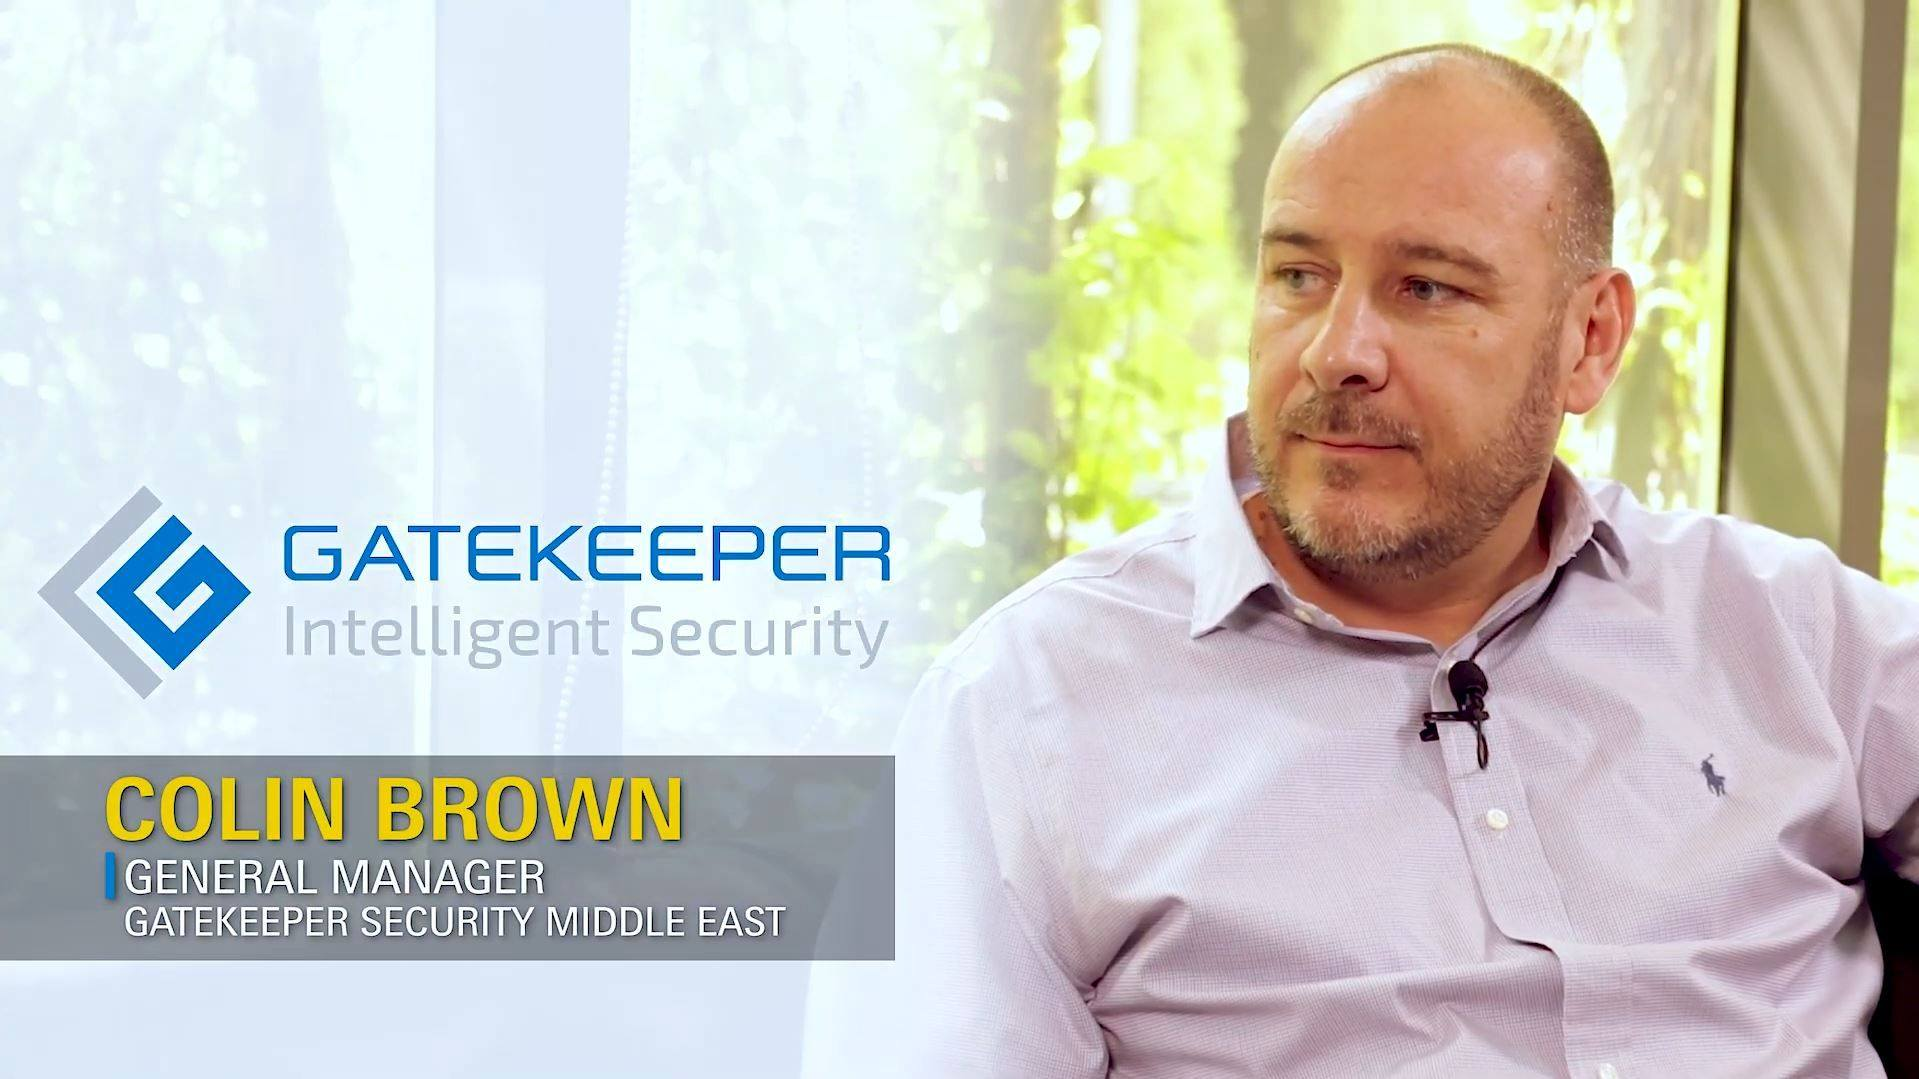 Colin Brown, General Manager,  Gatekeeper Security,  Middle East